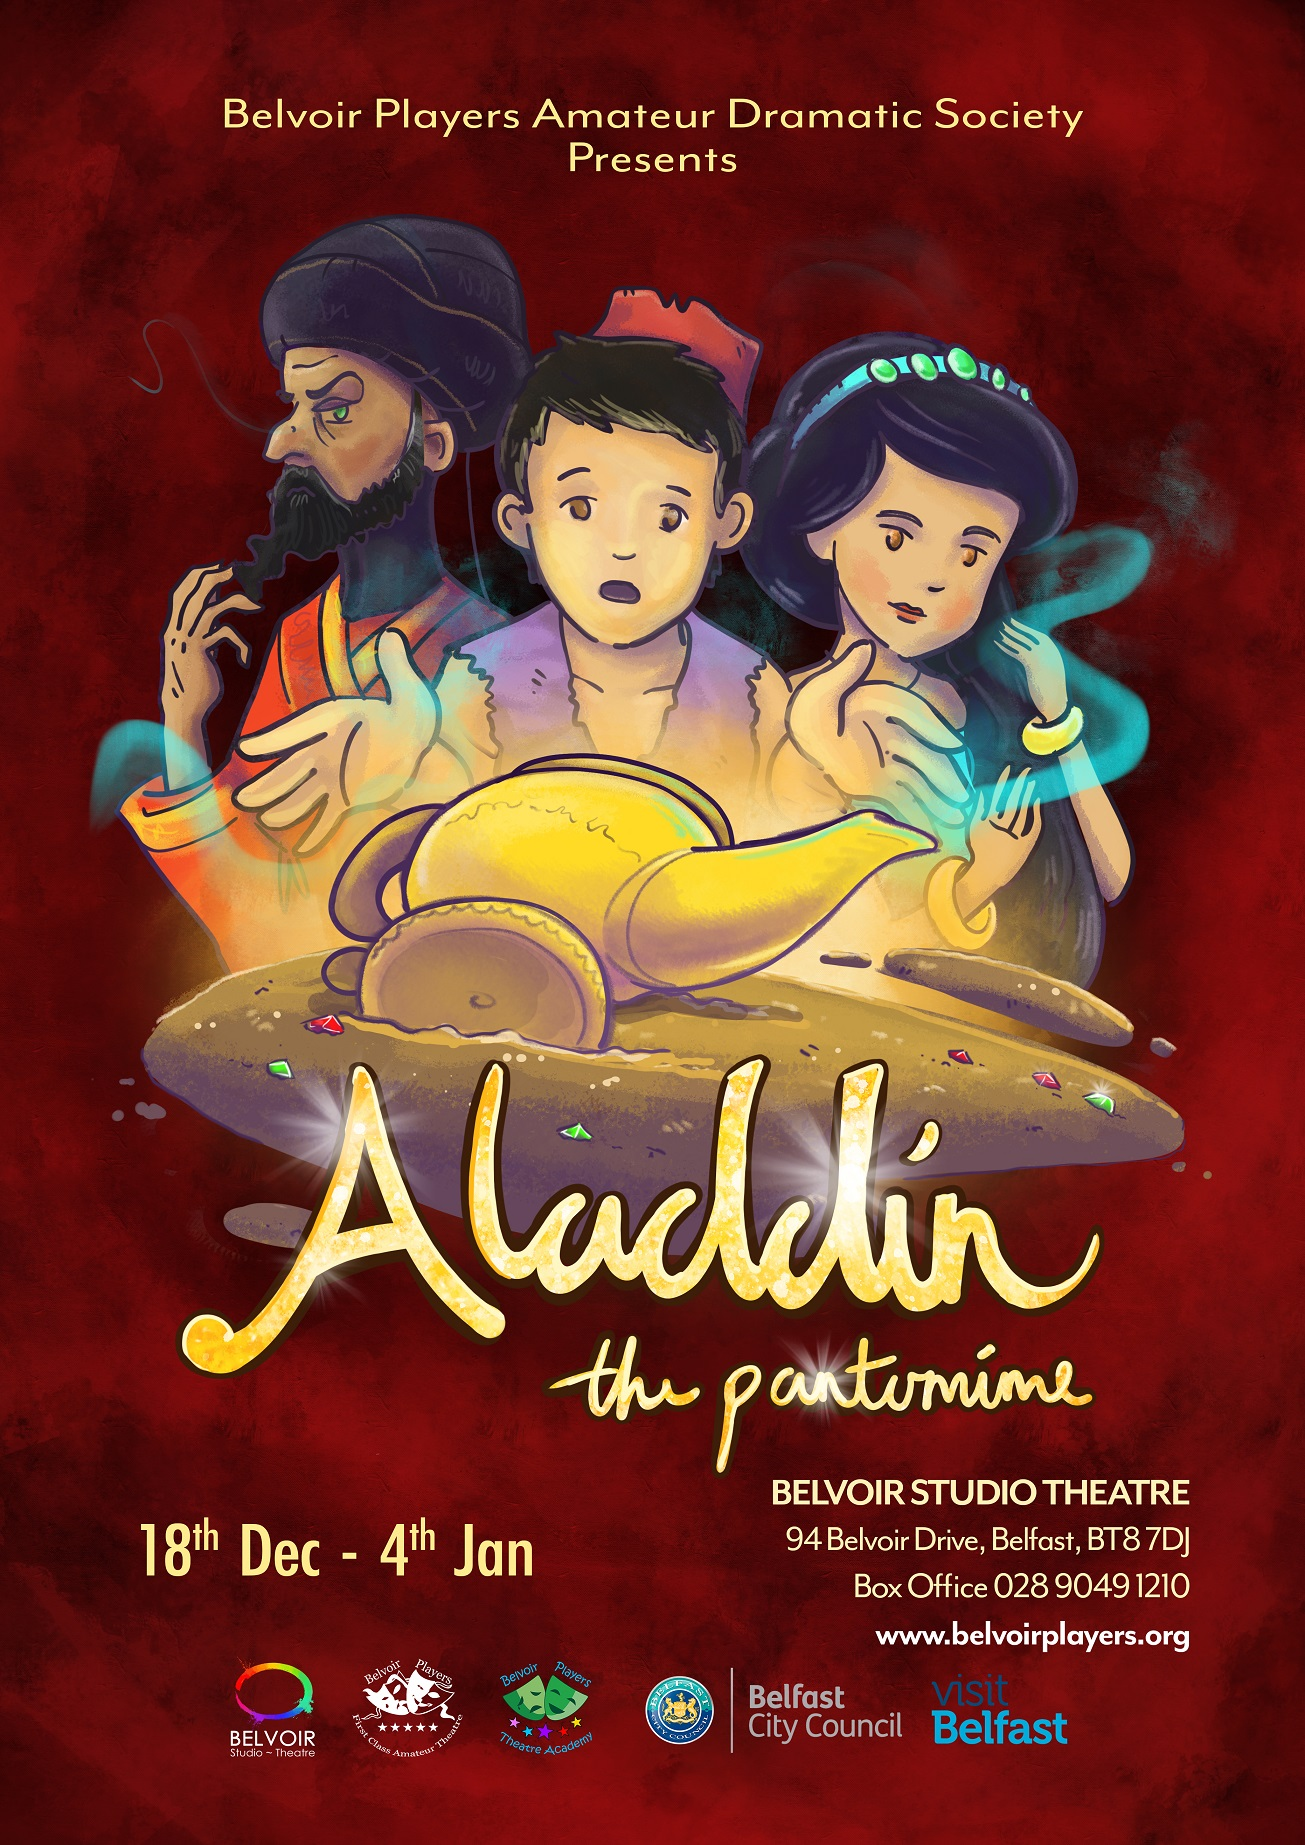 Aladdin - Belvoir Players Panto 2019!